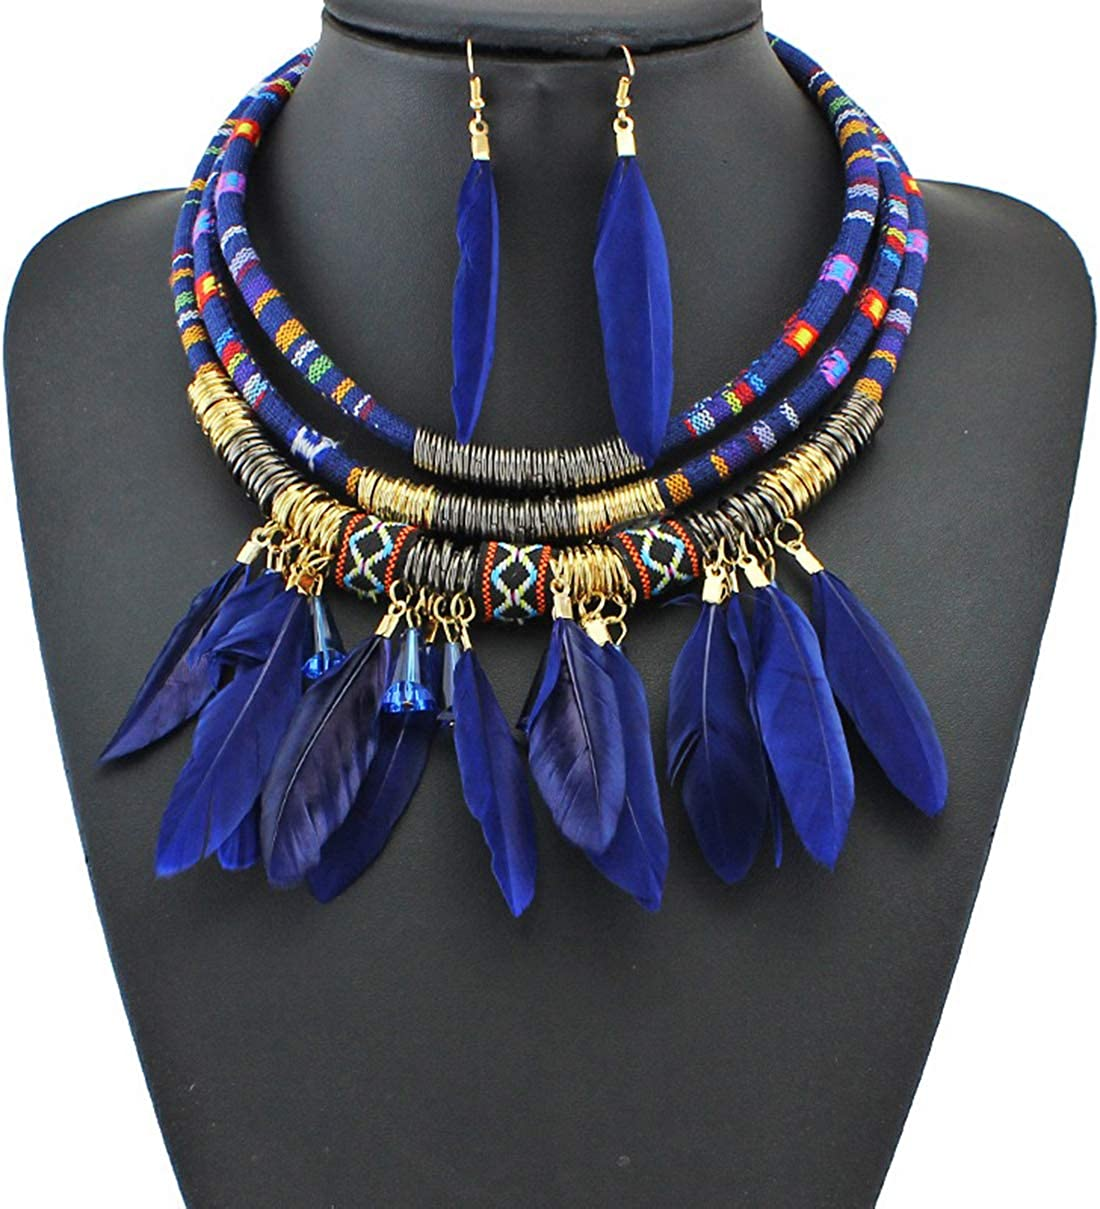 Alina Belle Vintage Feather Pendant Tribal Necklace African Earring Jewelry Set